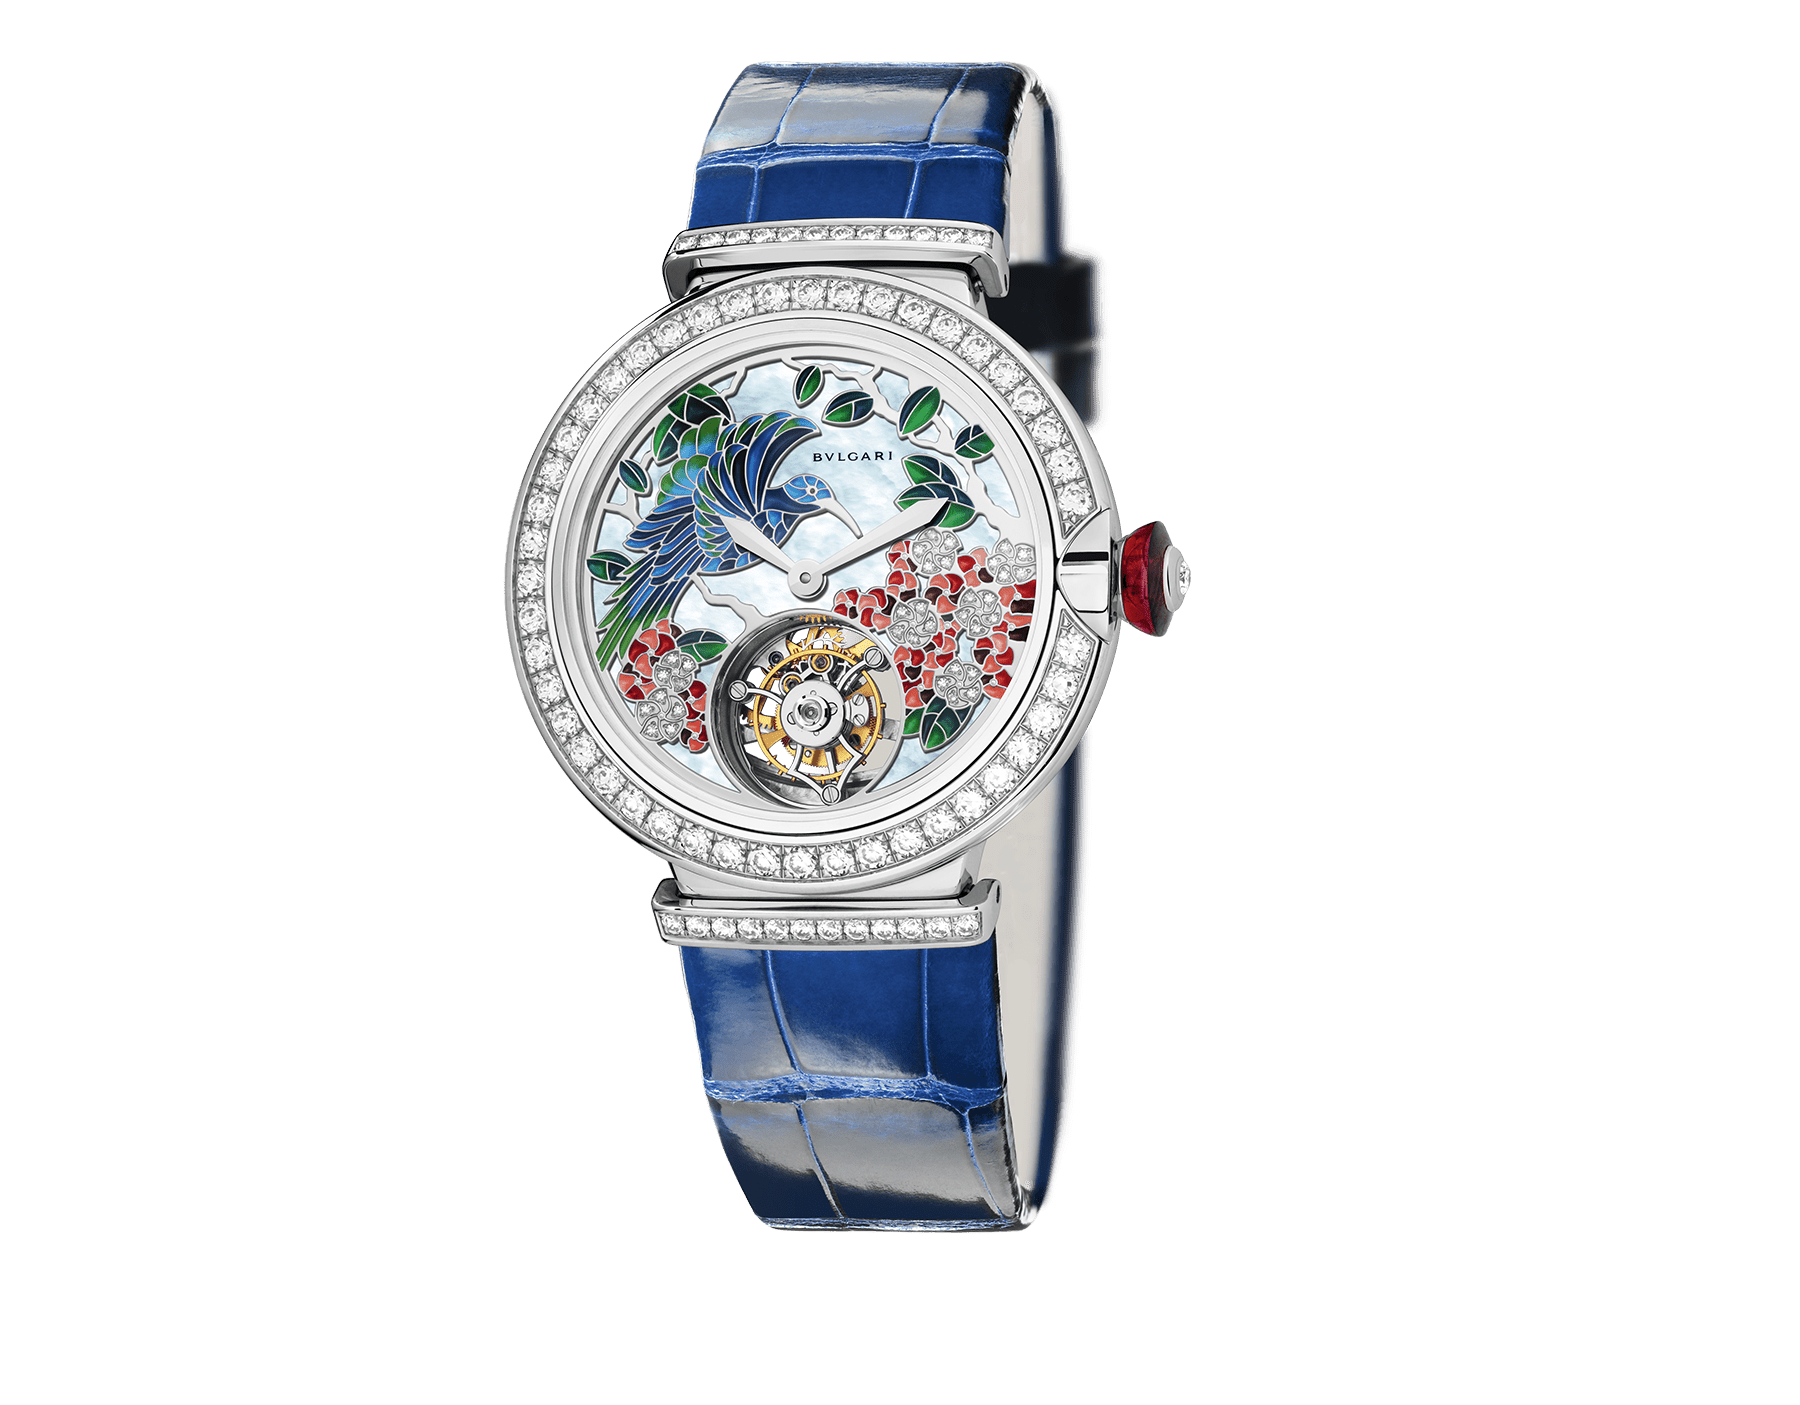 LVCEA Tourbillon with mechanical manufacture movement, automatic winding, see-through tourbillon and sapphire bridge. 18 kt white gold case set with brilliant-cut diamonds, metiers d'art peinture miniature motifs dial set with diamonds and blue alligator bracelet. 102579 image 1